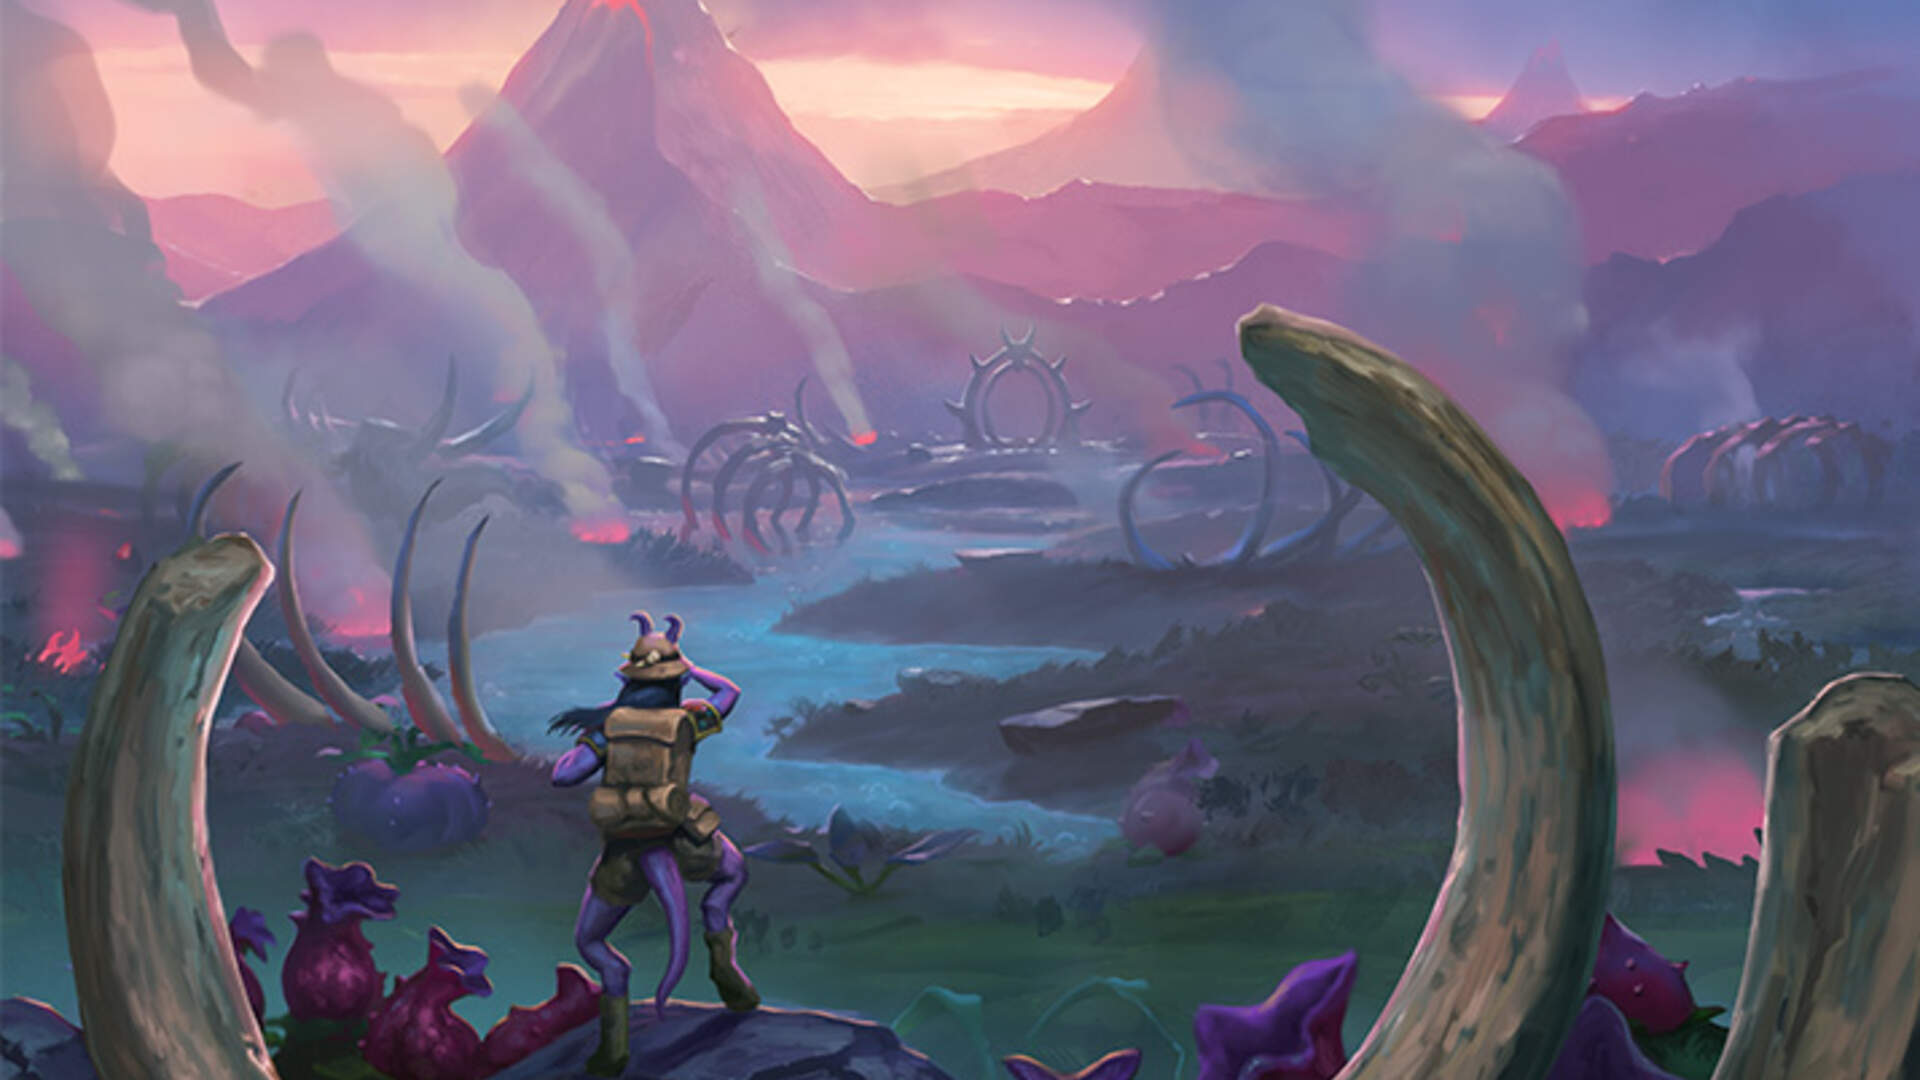 Hearthstone: Journey to Un'Goro Introduces Two Really Interesting New Mechanics